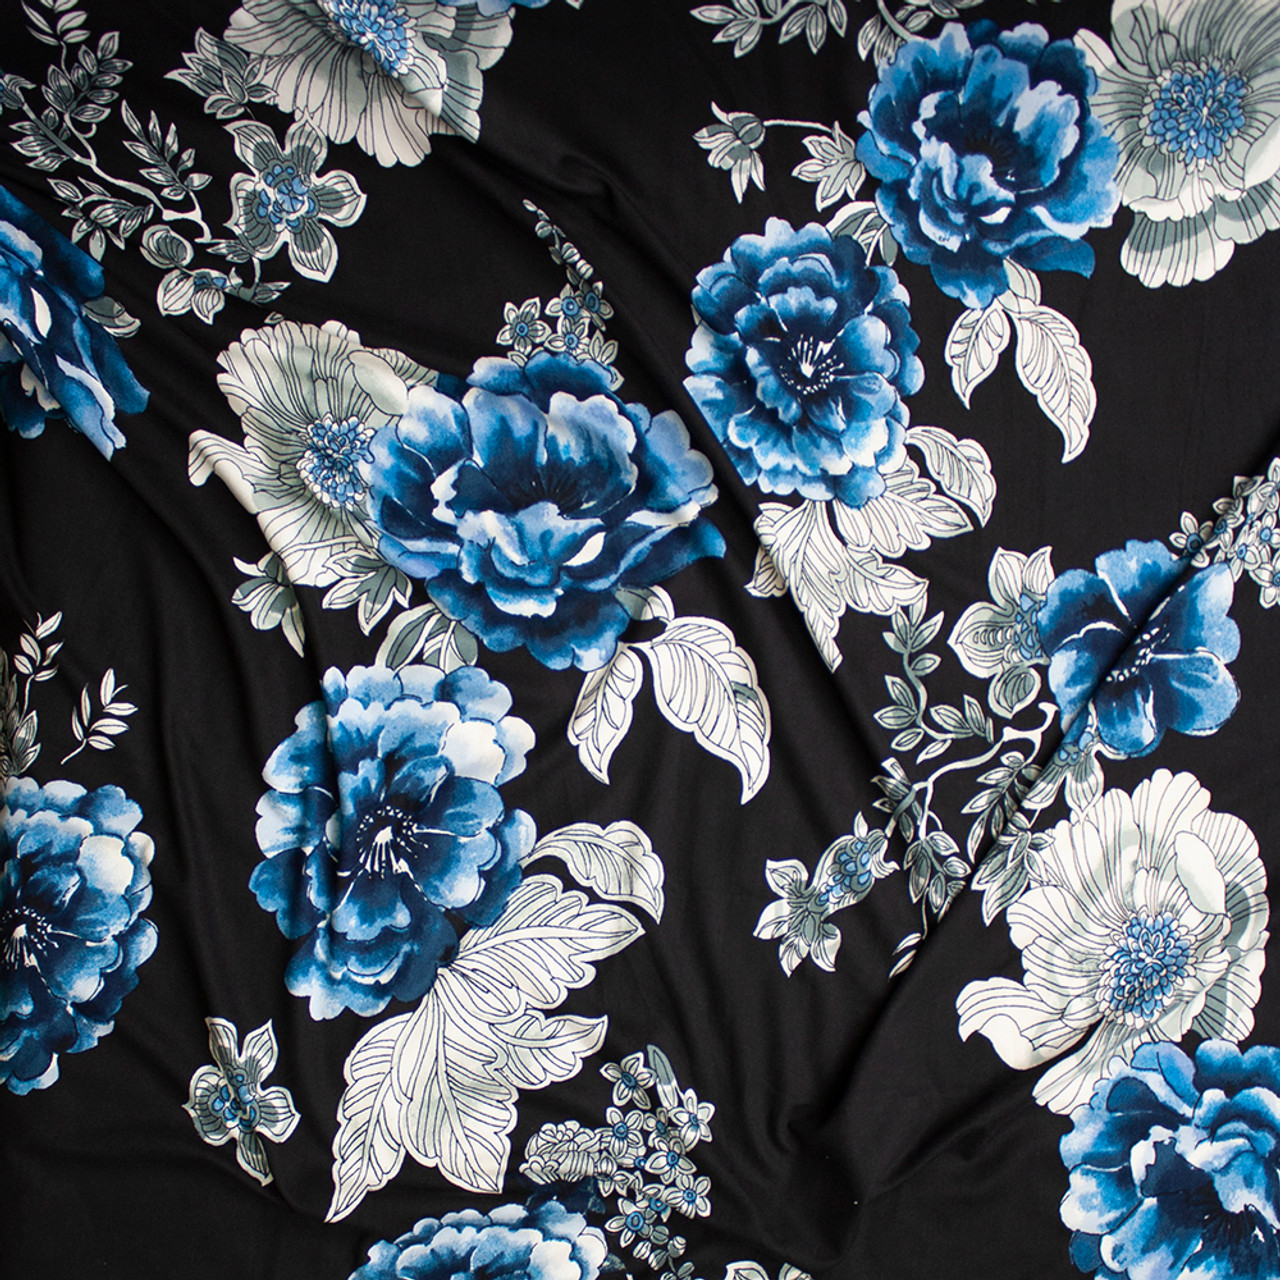 ecee5912512 ... Teal, White, and Grey Outline Floral on Black Double Brushed Poly  Spandex Knit Fabric